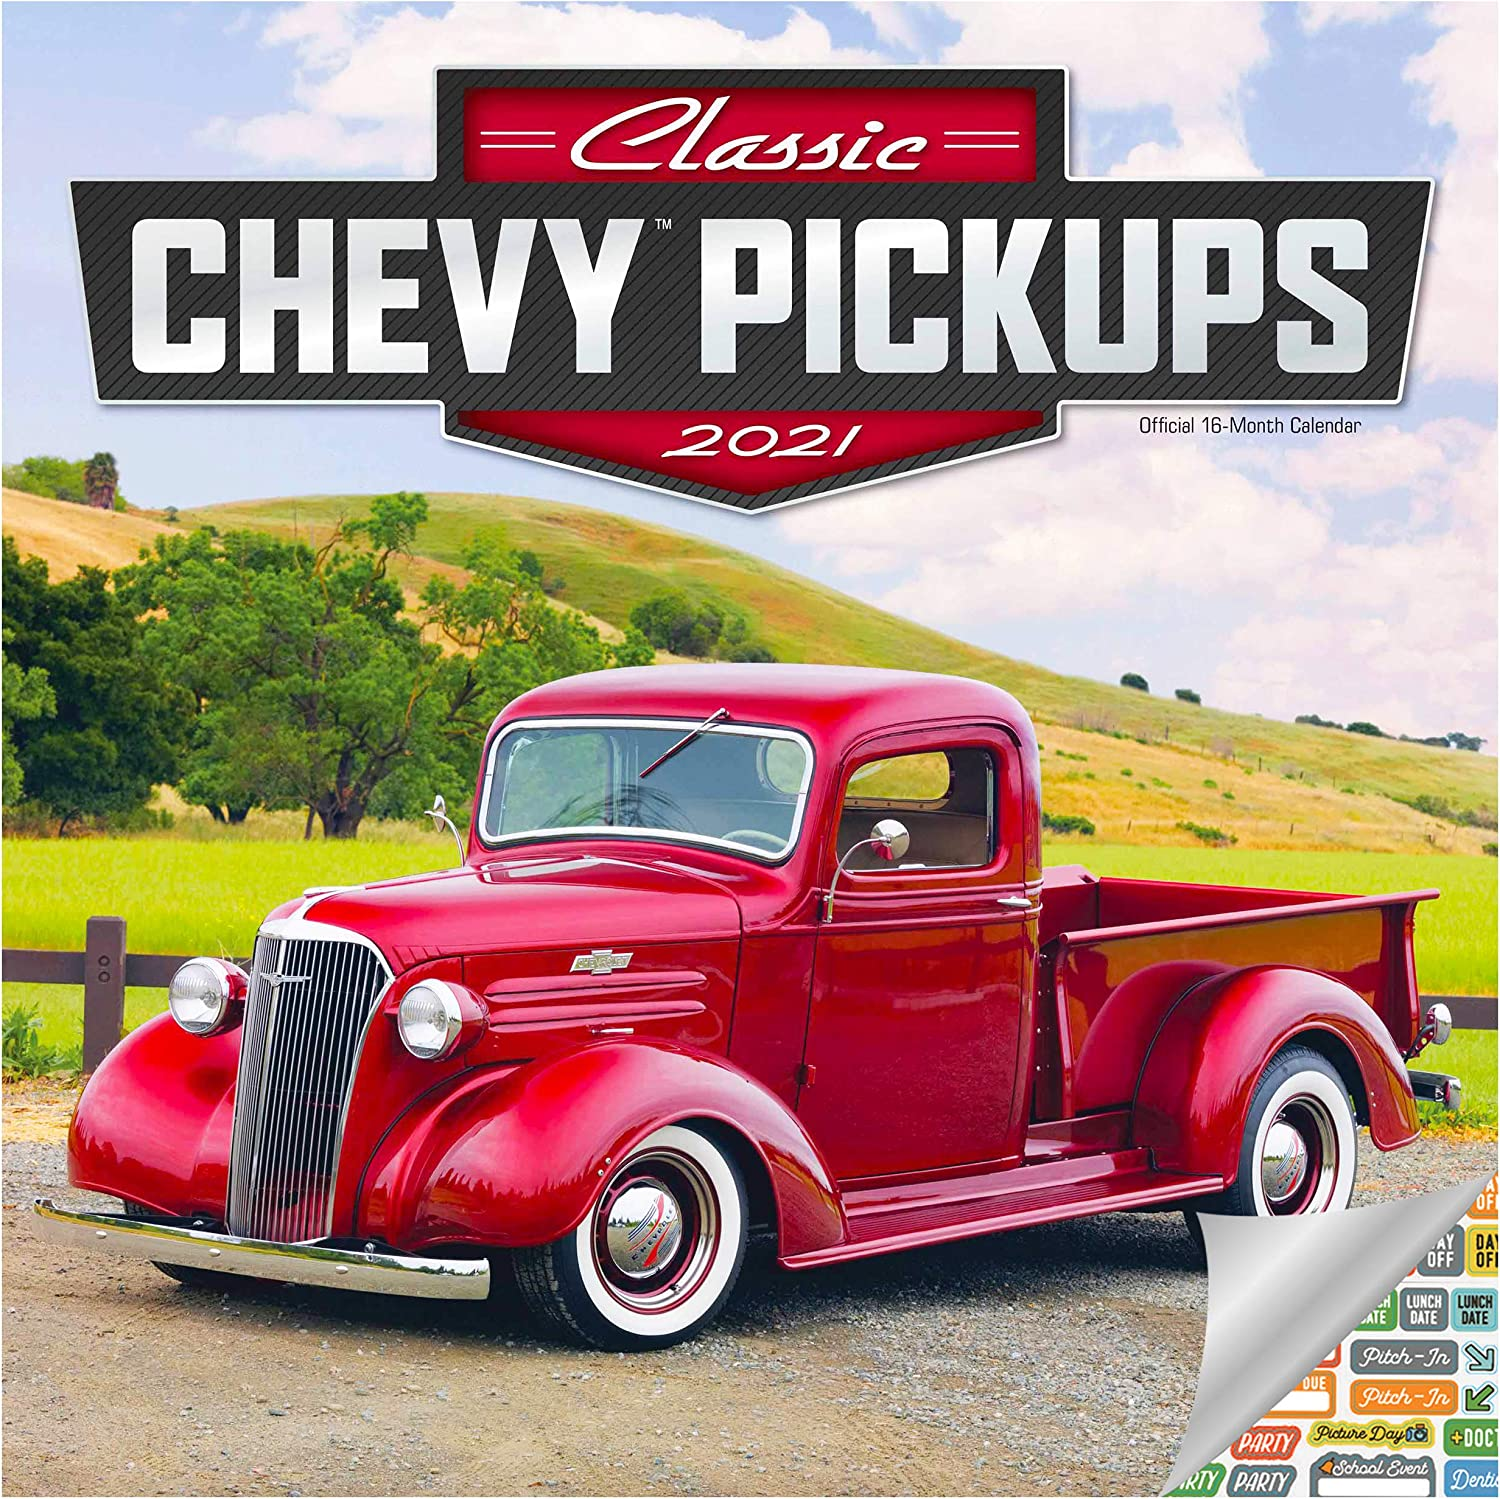 Classic Chevy Pickups Calendar 2021 Bundle - Deluxe 2021 Chevrolet Trucks Wall Calendar with Over 100 Calendar Stickers (Classic Trucks Gifts, Office Supplies)